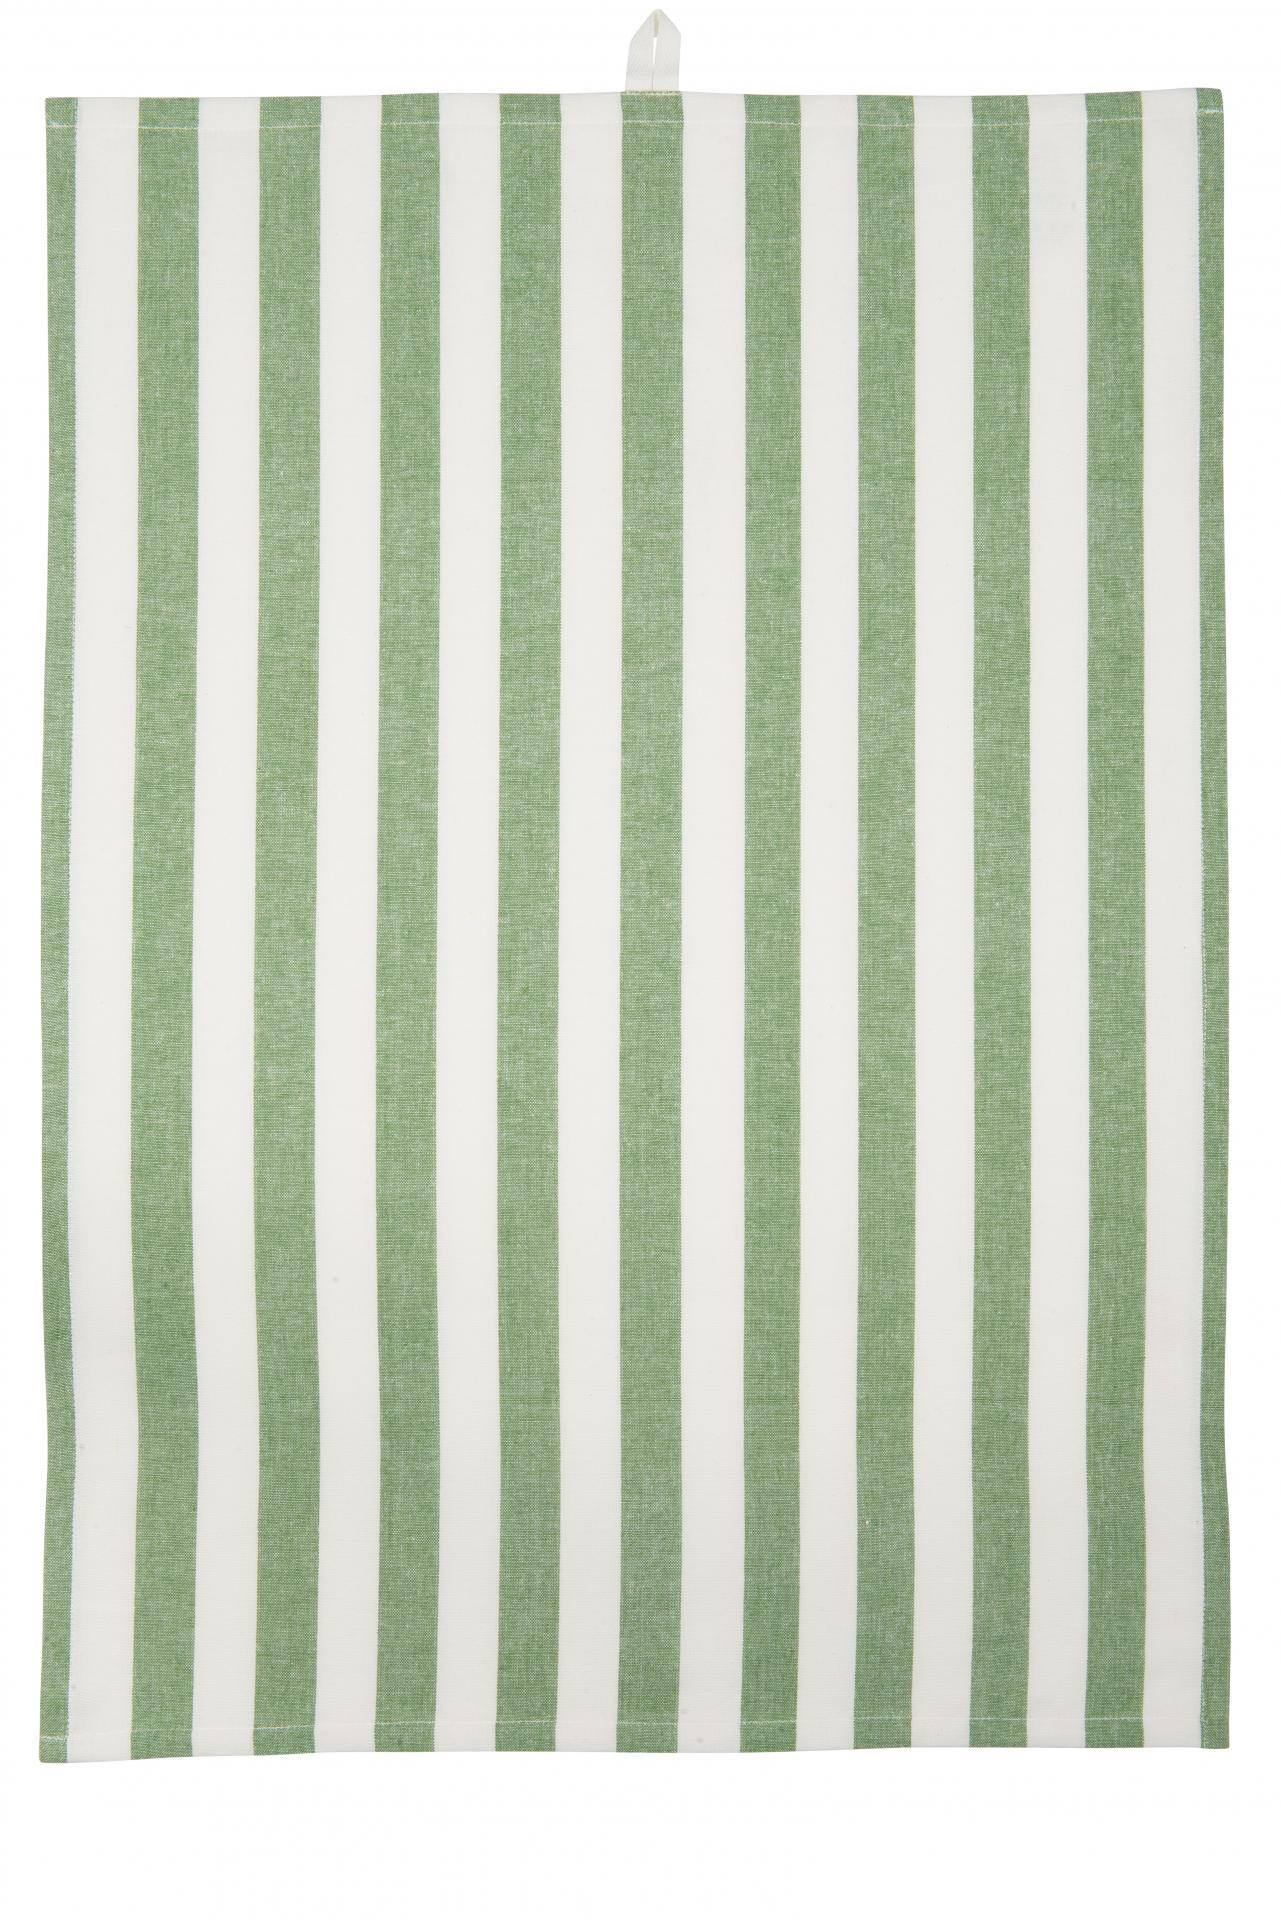 IB LAURSEN Utěrka Stripes green